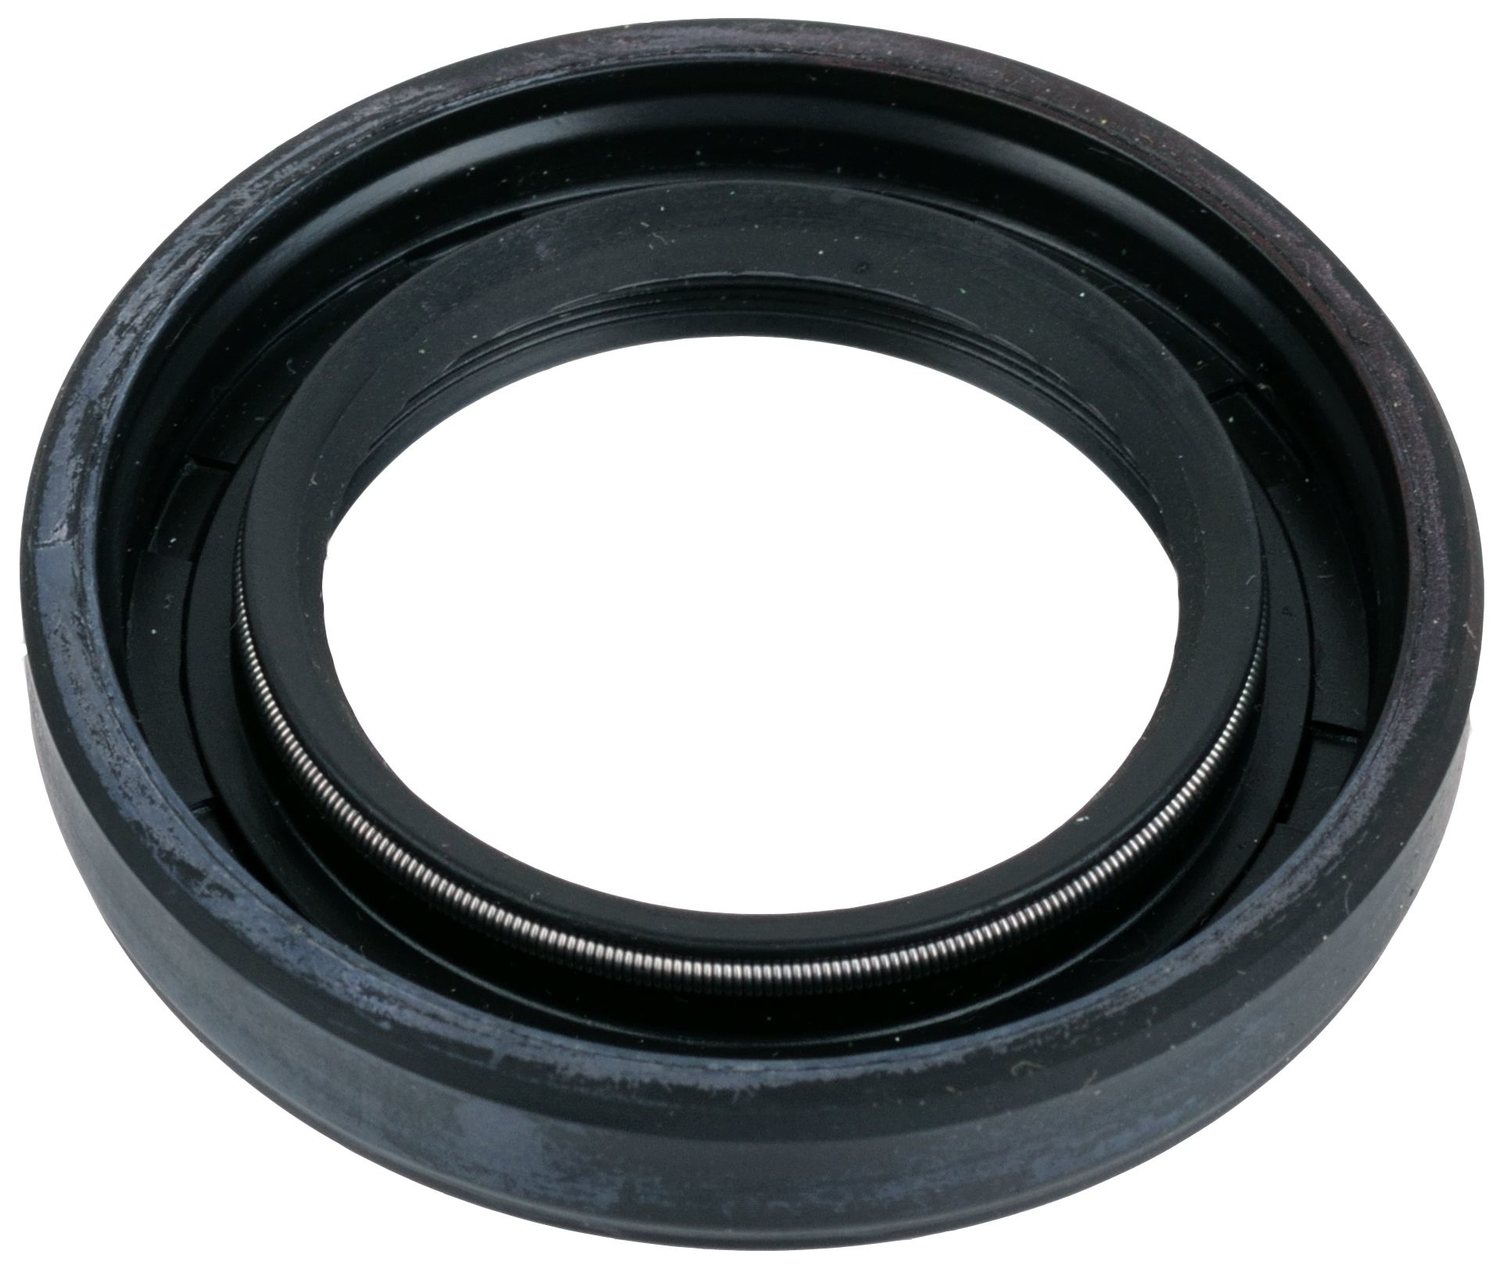 SKF (CHICAGO RAWHIDE) - Manual Trans Main Shaft Seal - SKF 10494